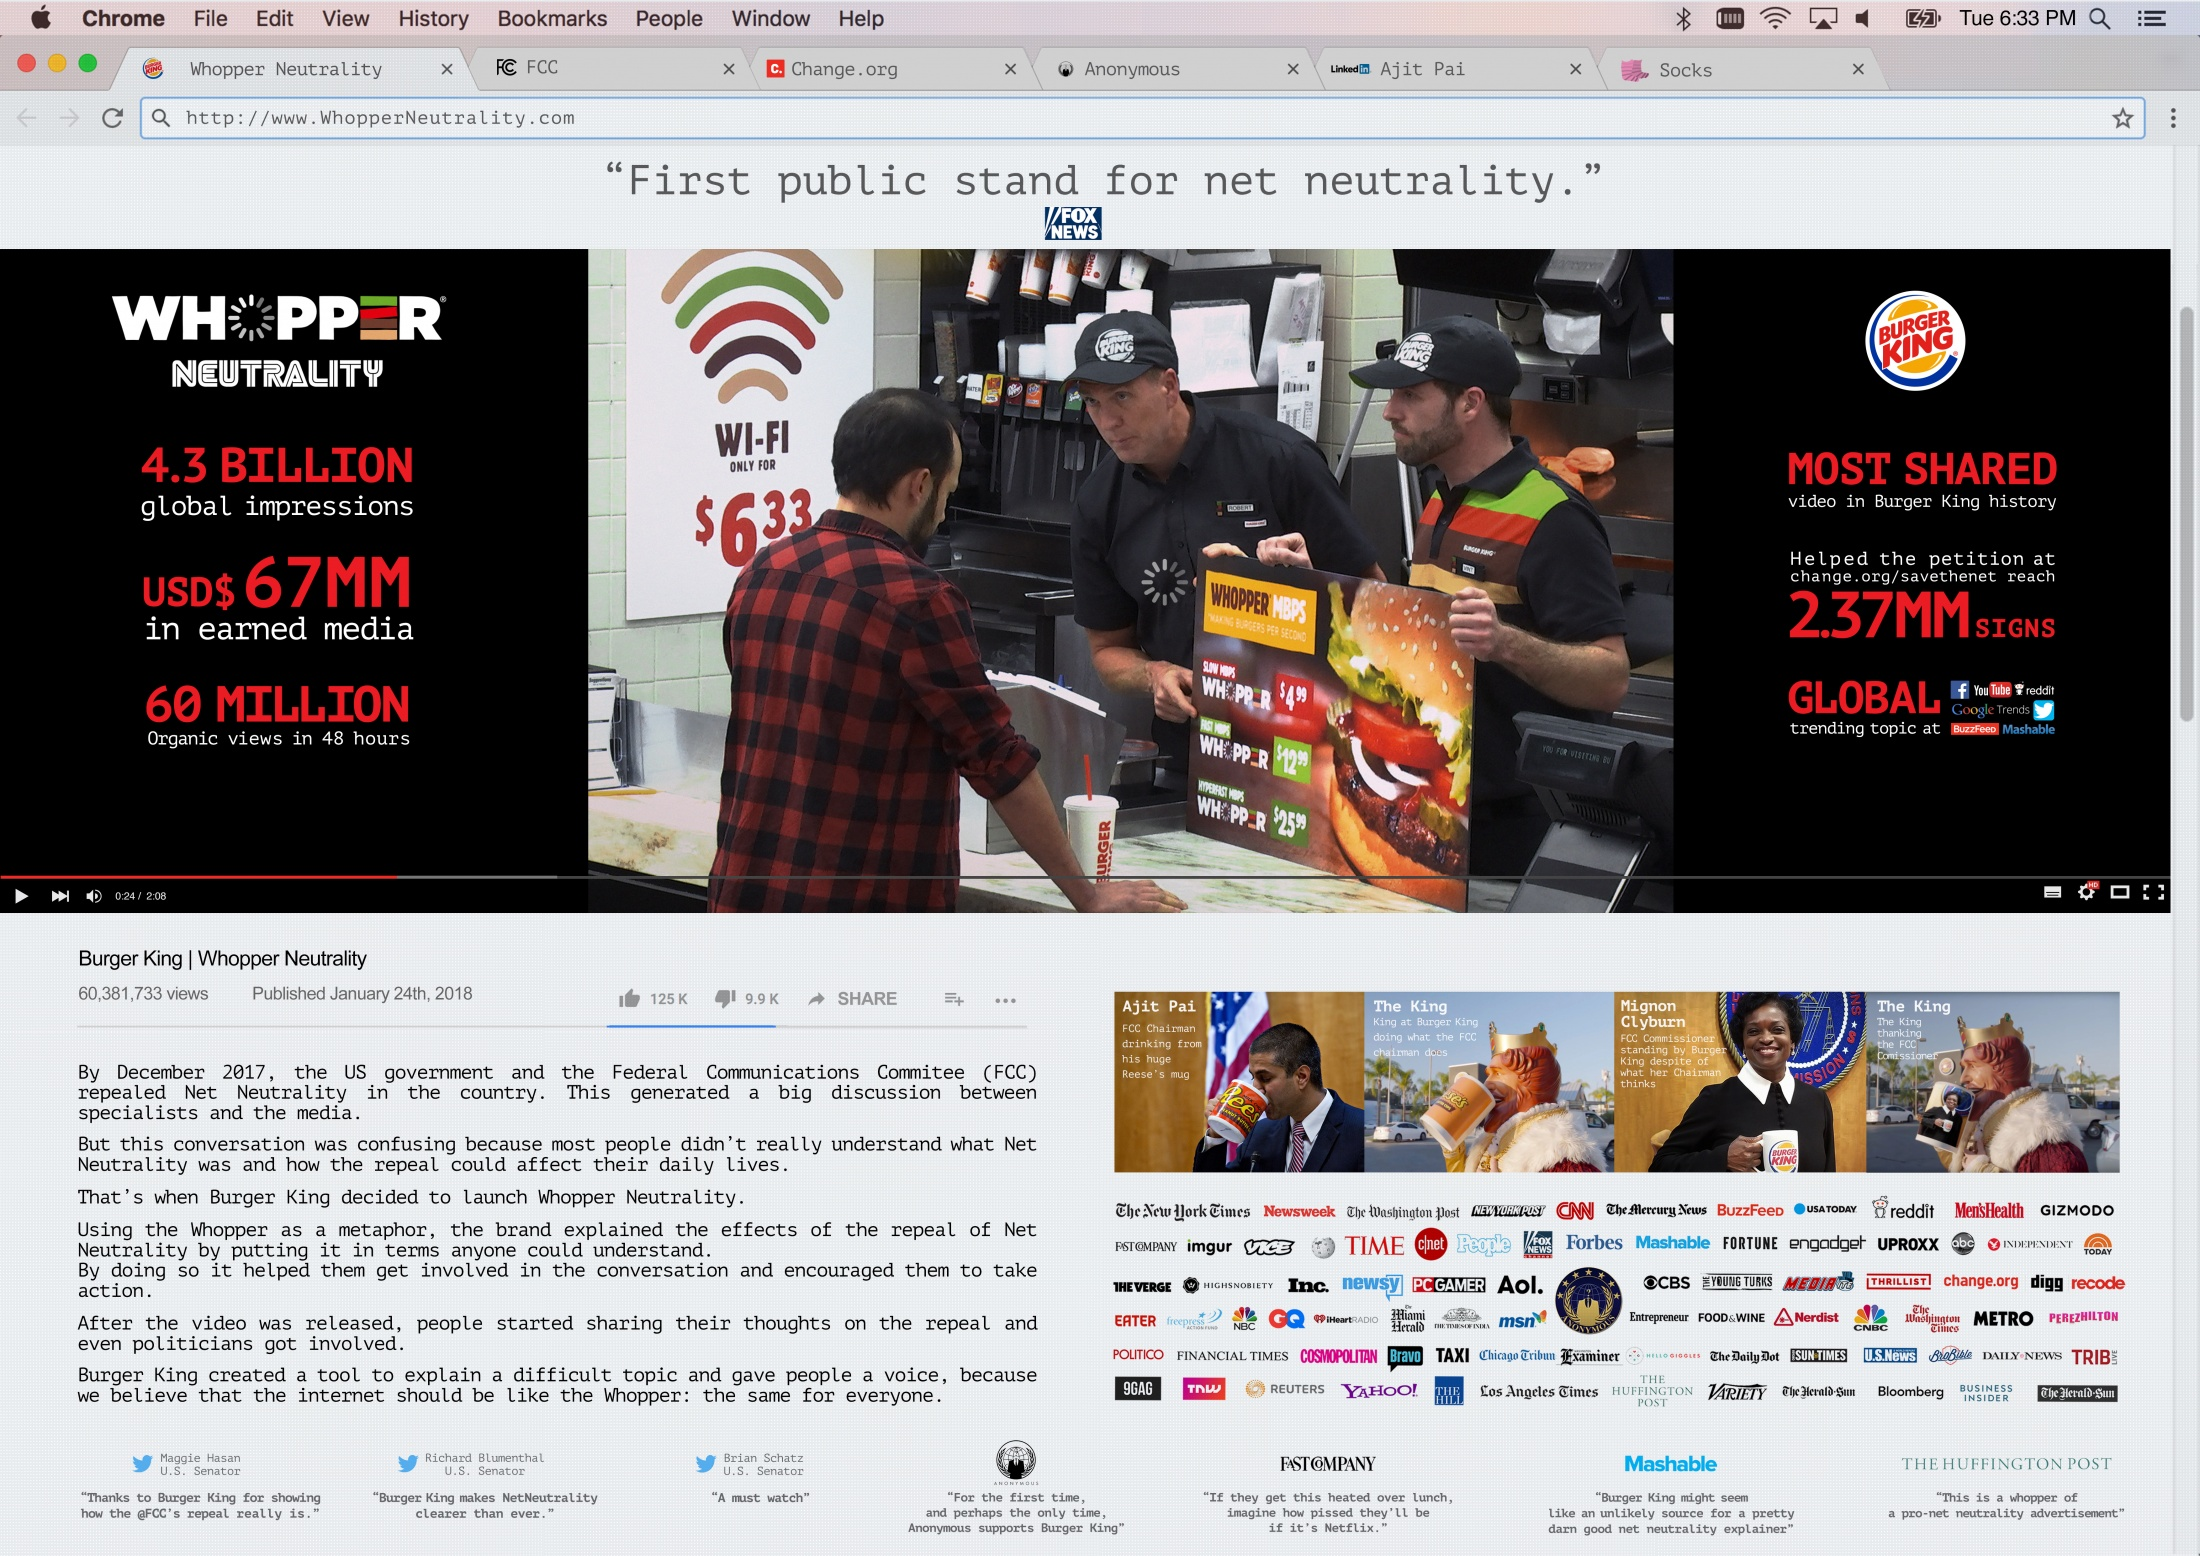 Image Media for WHOPPER NEUTRALITY